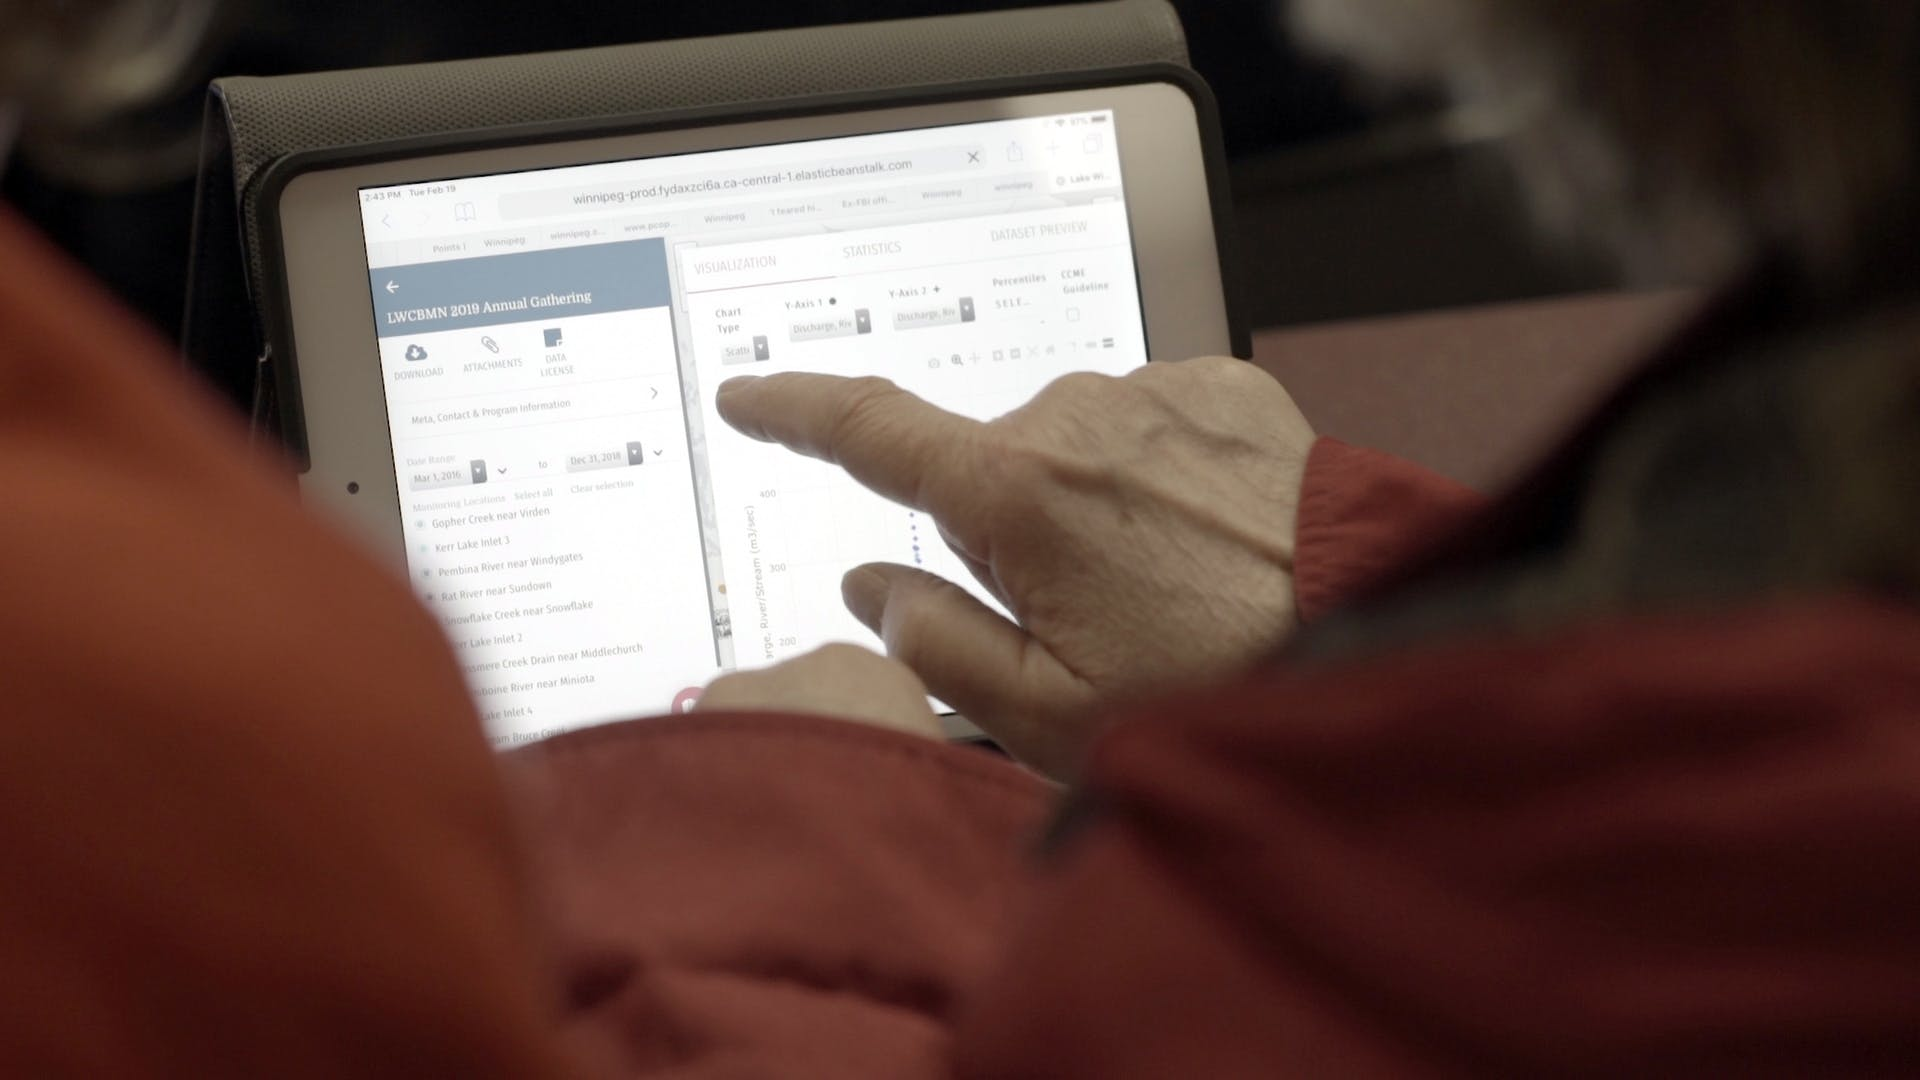 hand of an elderly person pointing at a tablet displaying a datastream visualization page